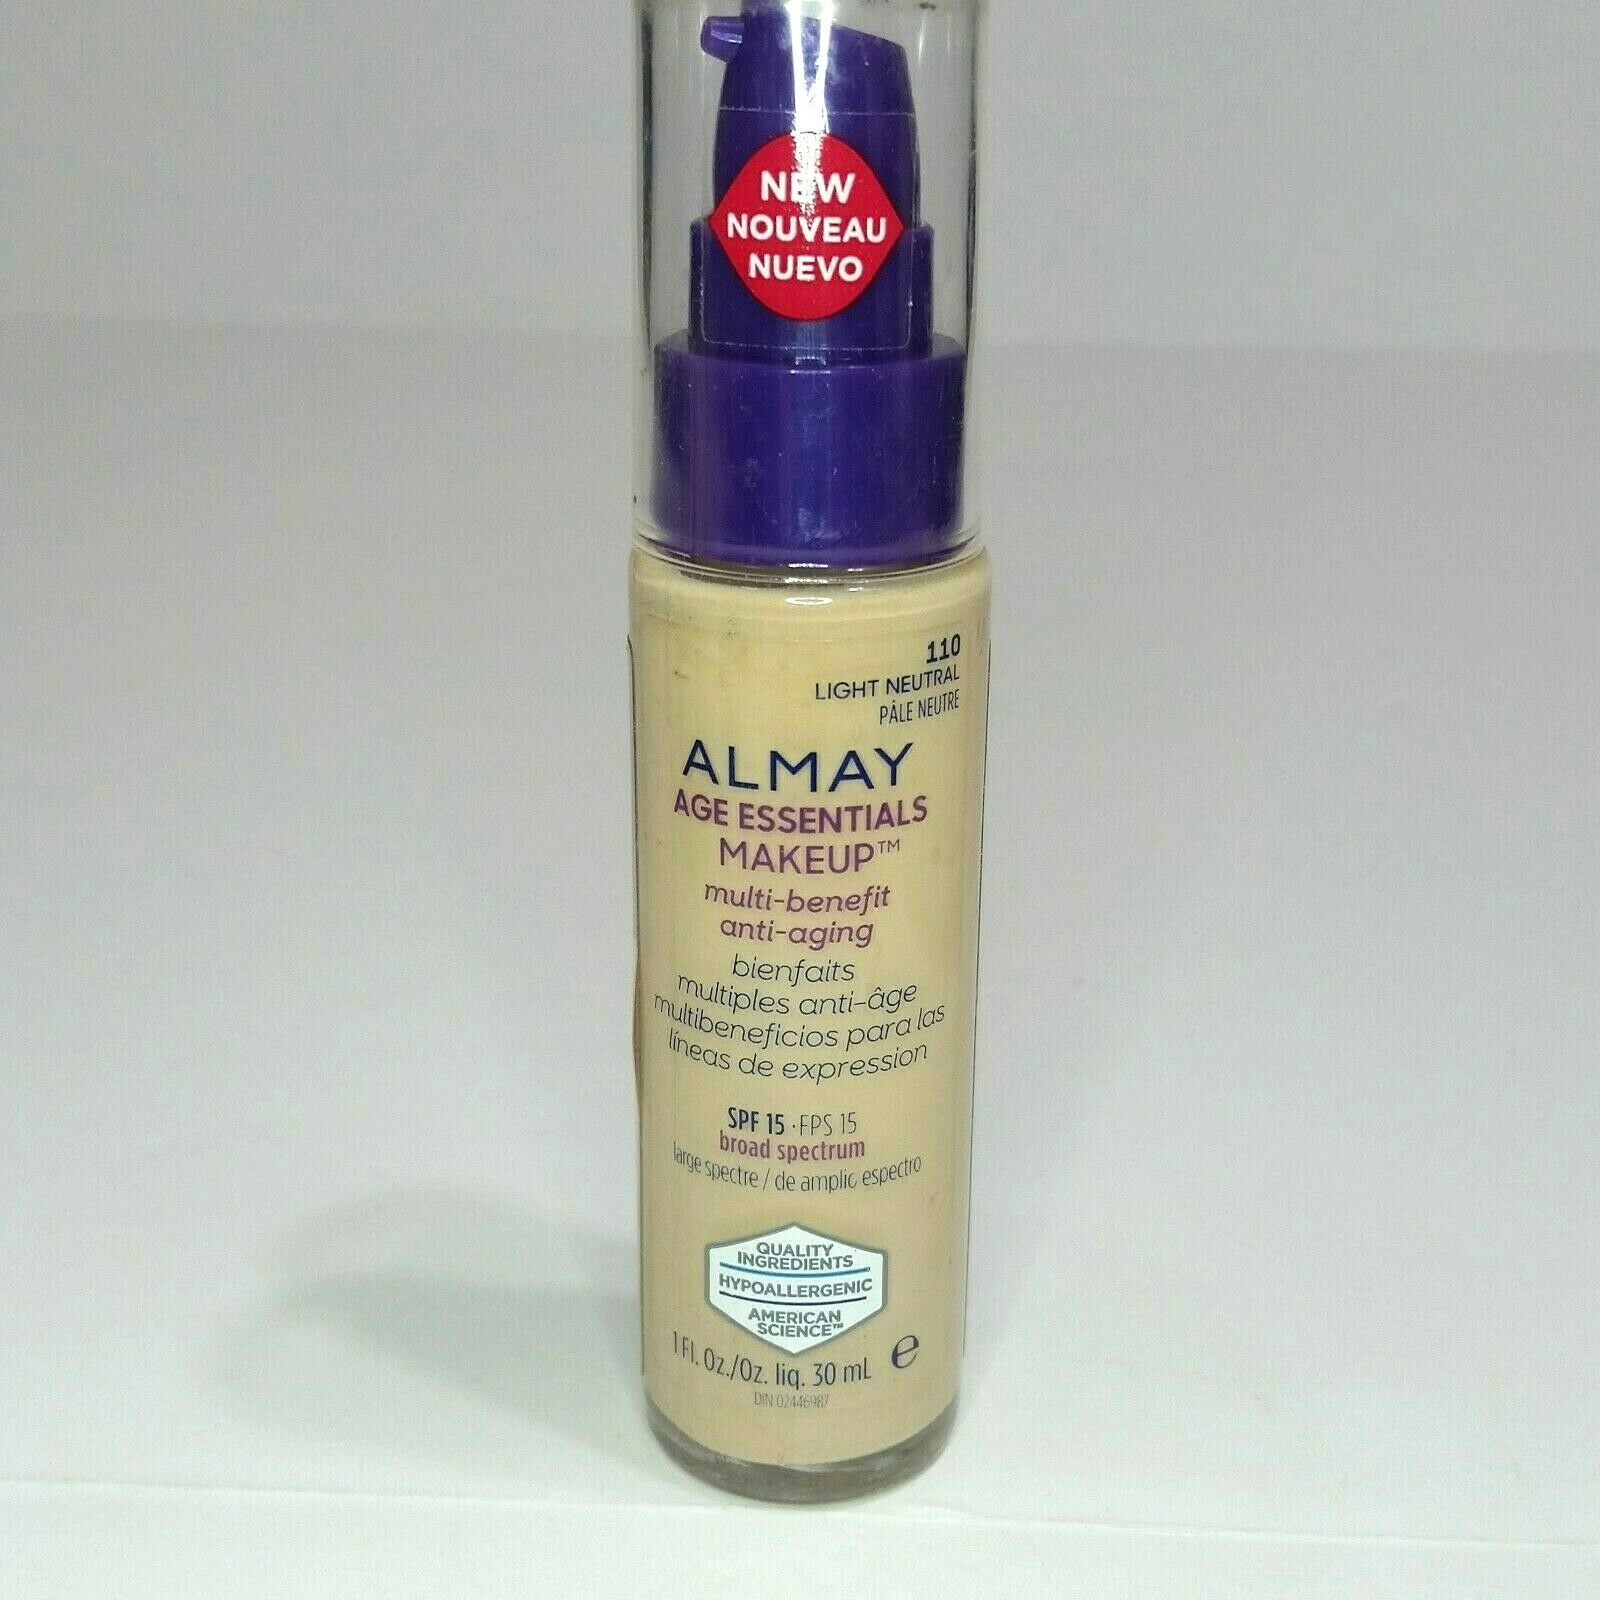 Primary image for Almay Age Essentials Makeup Multi-benefit Anti-aging #110 Light Neutral SPF15